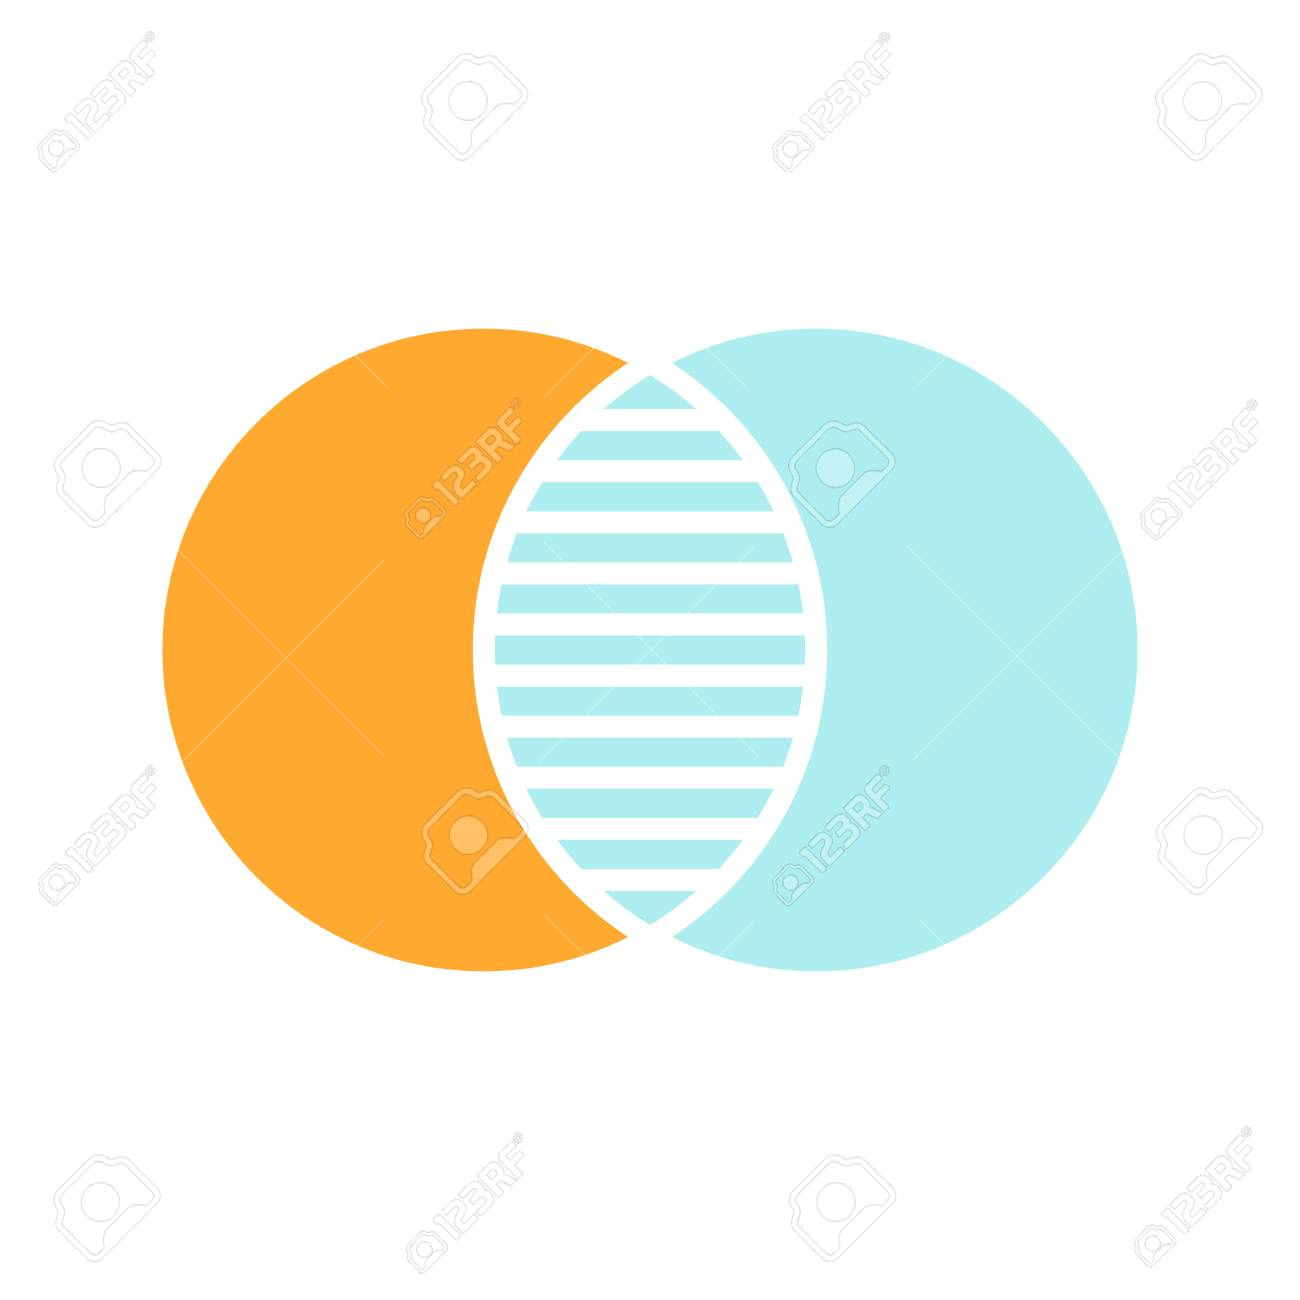 hight resolution of discrete maths glyph color icon overlapping circles intersection venn diagram silhouette symbol